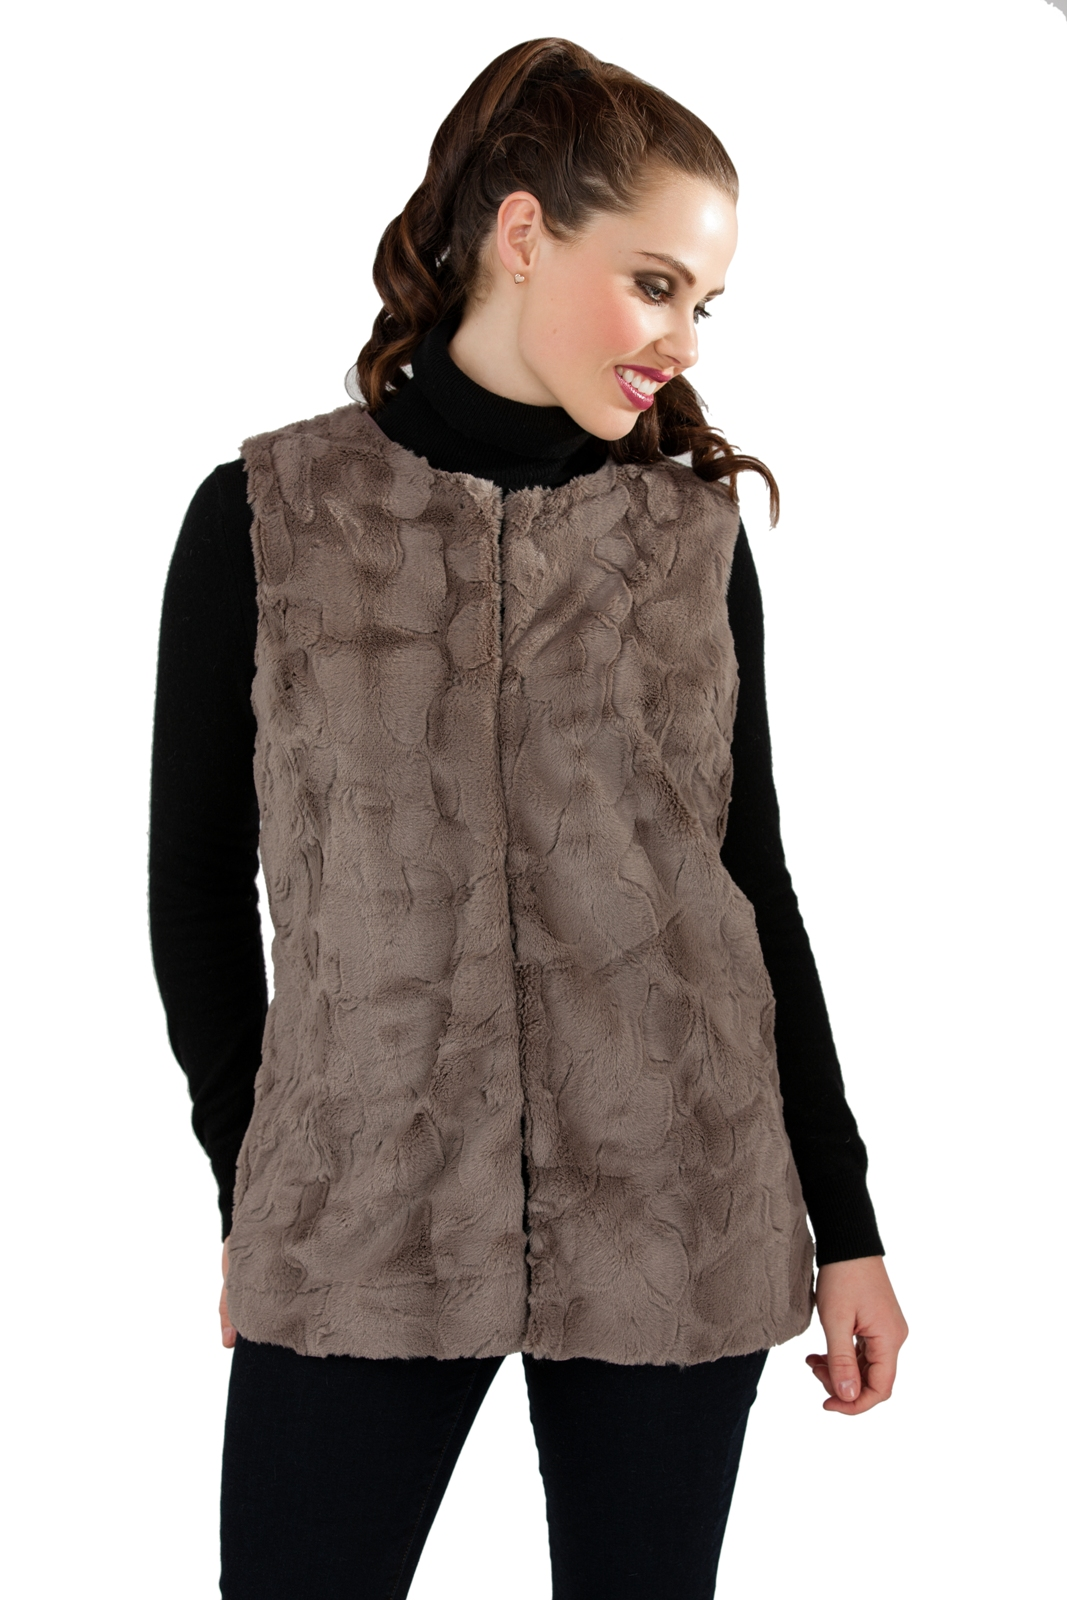 Women's Chunky Corduroy Sleeveless Jacket Quilted Padding Zip up Vest Coat. from $ 27 99 Prime. 5 out of 5 stars 1. MISS MOLY. Women's Lightweight Quilted Vest Zip up Stand Collar Padded Gilet Sleeveless Jackets with Zipper Pockets. from $ 19 69 Prime. NASKY.